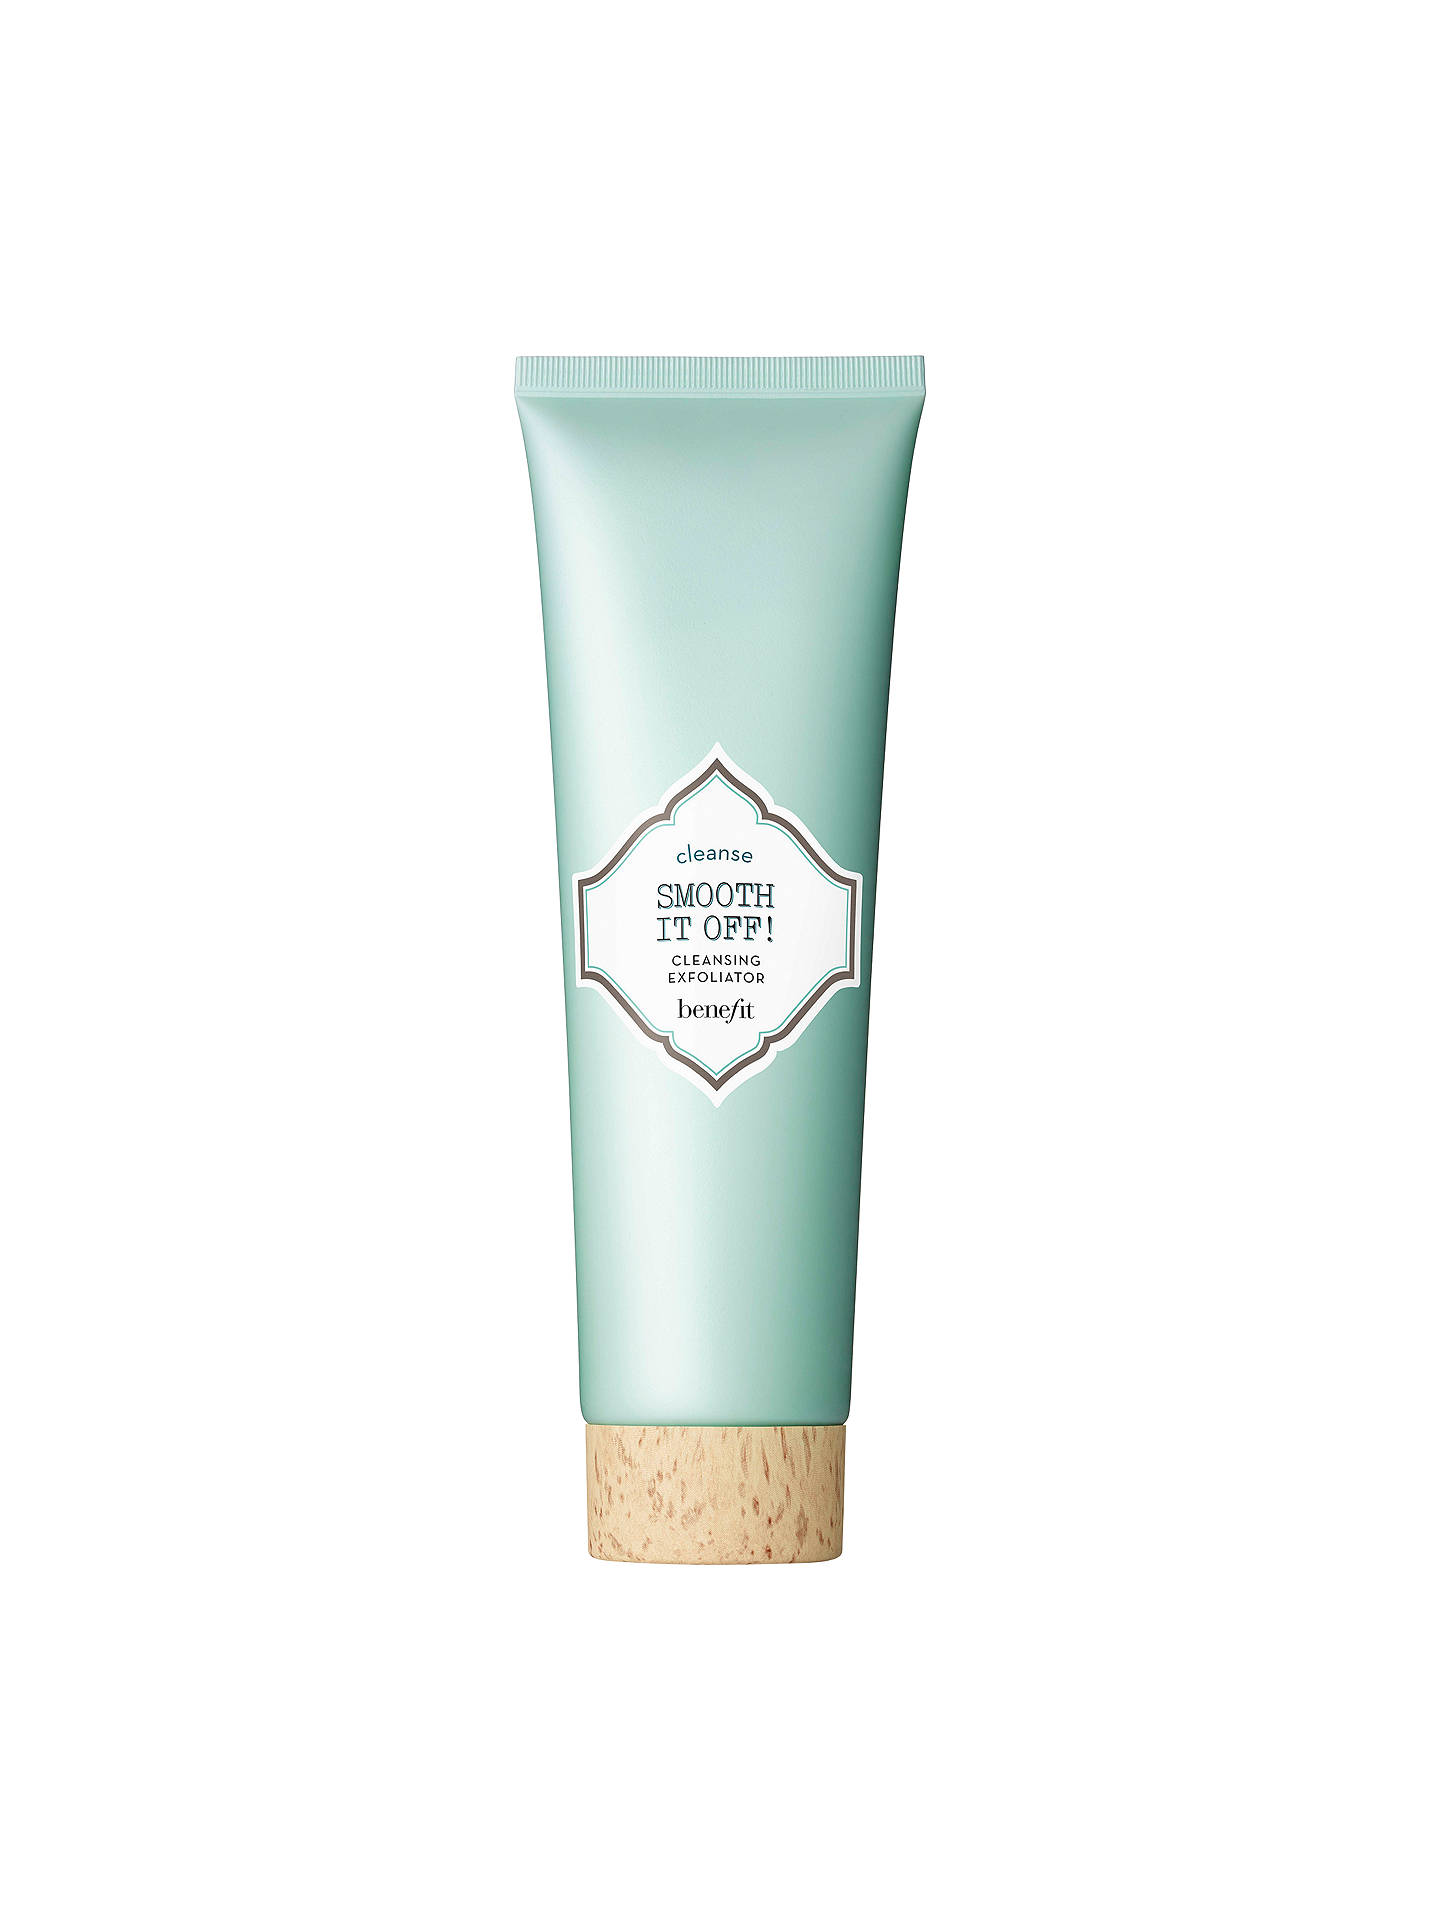 Buy Benefit Smooth It Off! Cleansing Exfoliator, 127.5g Online at johnlewis.com